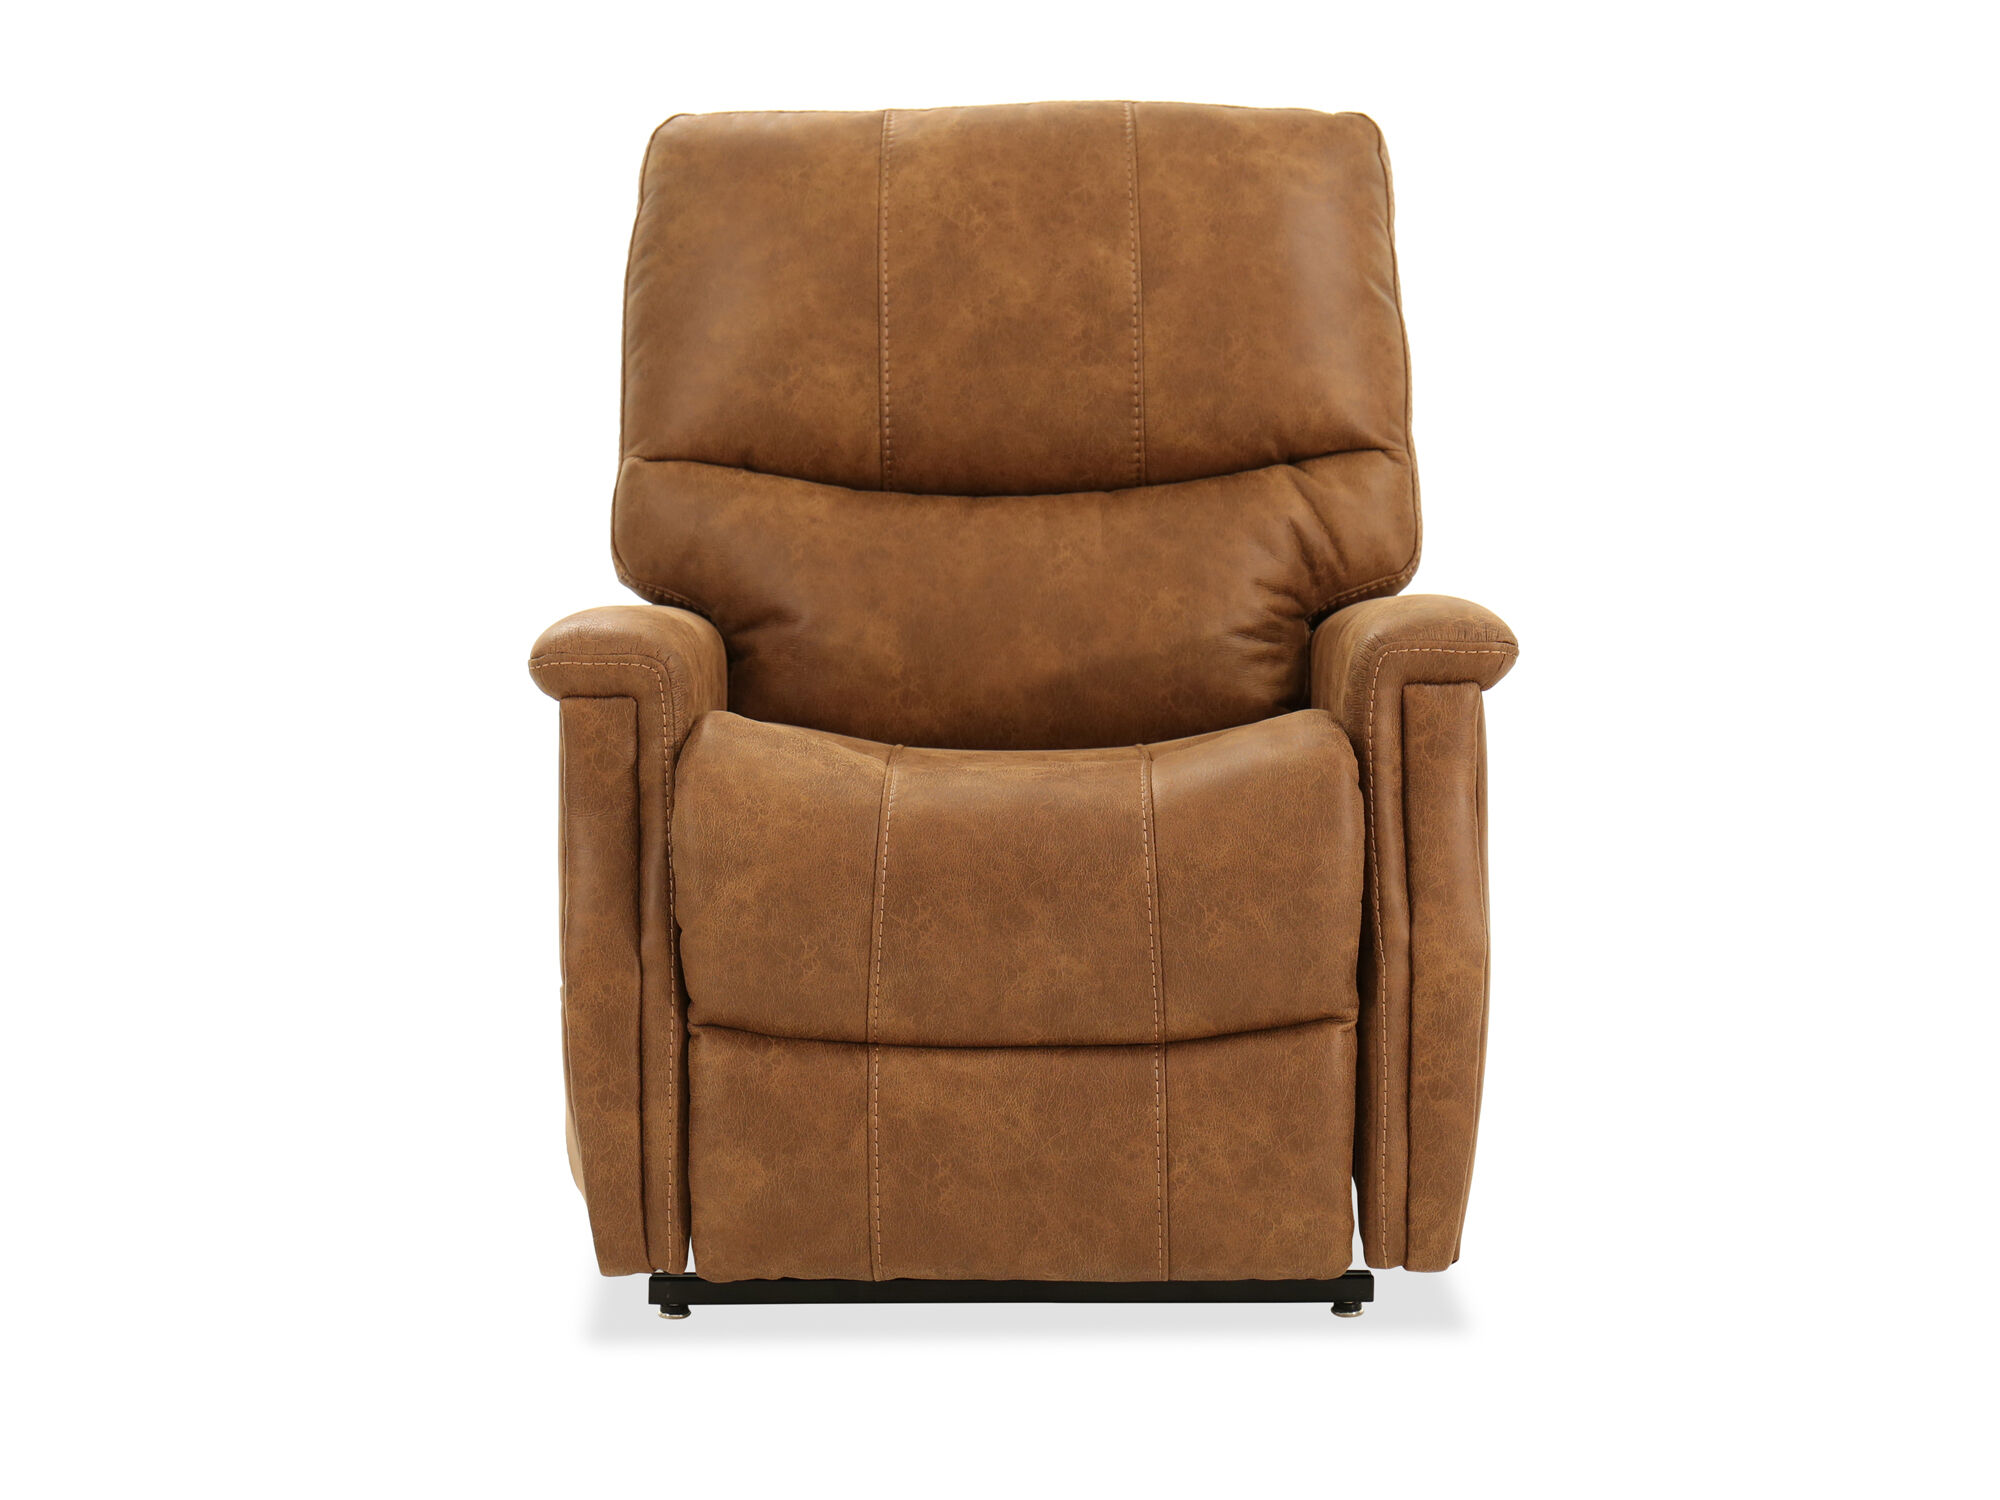 reclining mage sofa cb2 movie slipcover remote control recliner lift chair - home design ideas